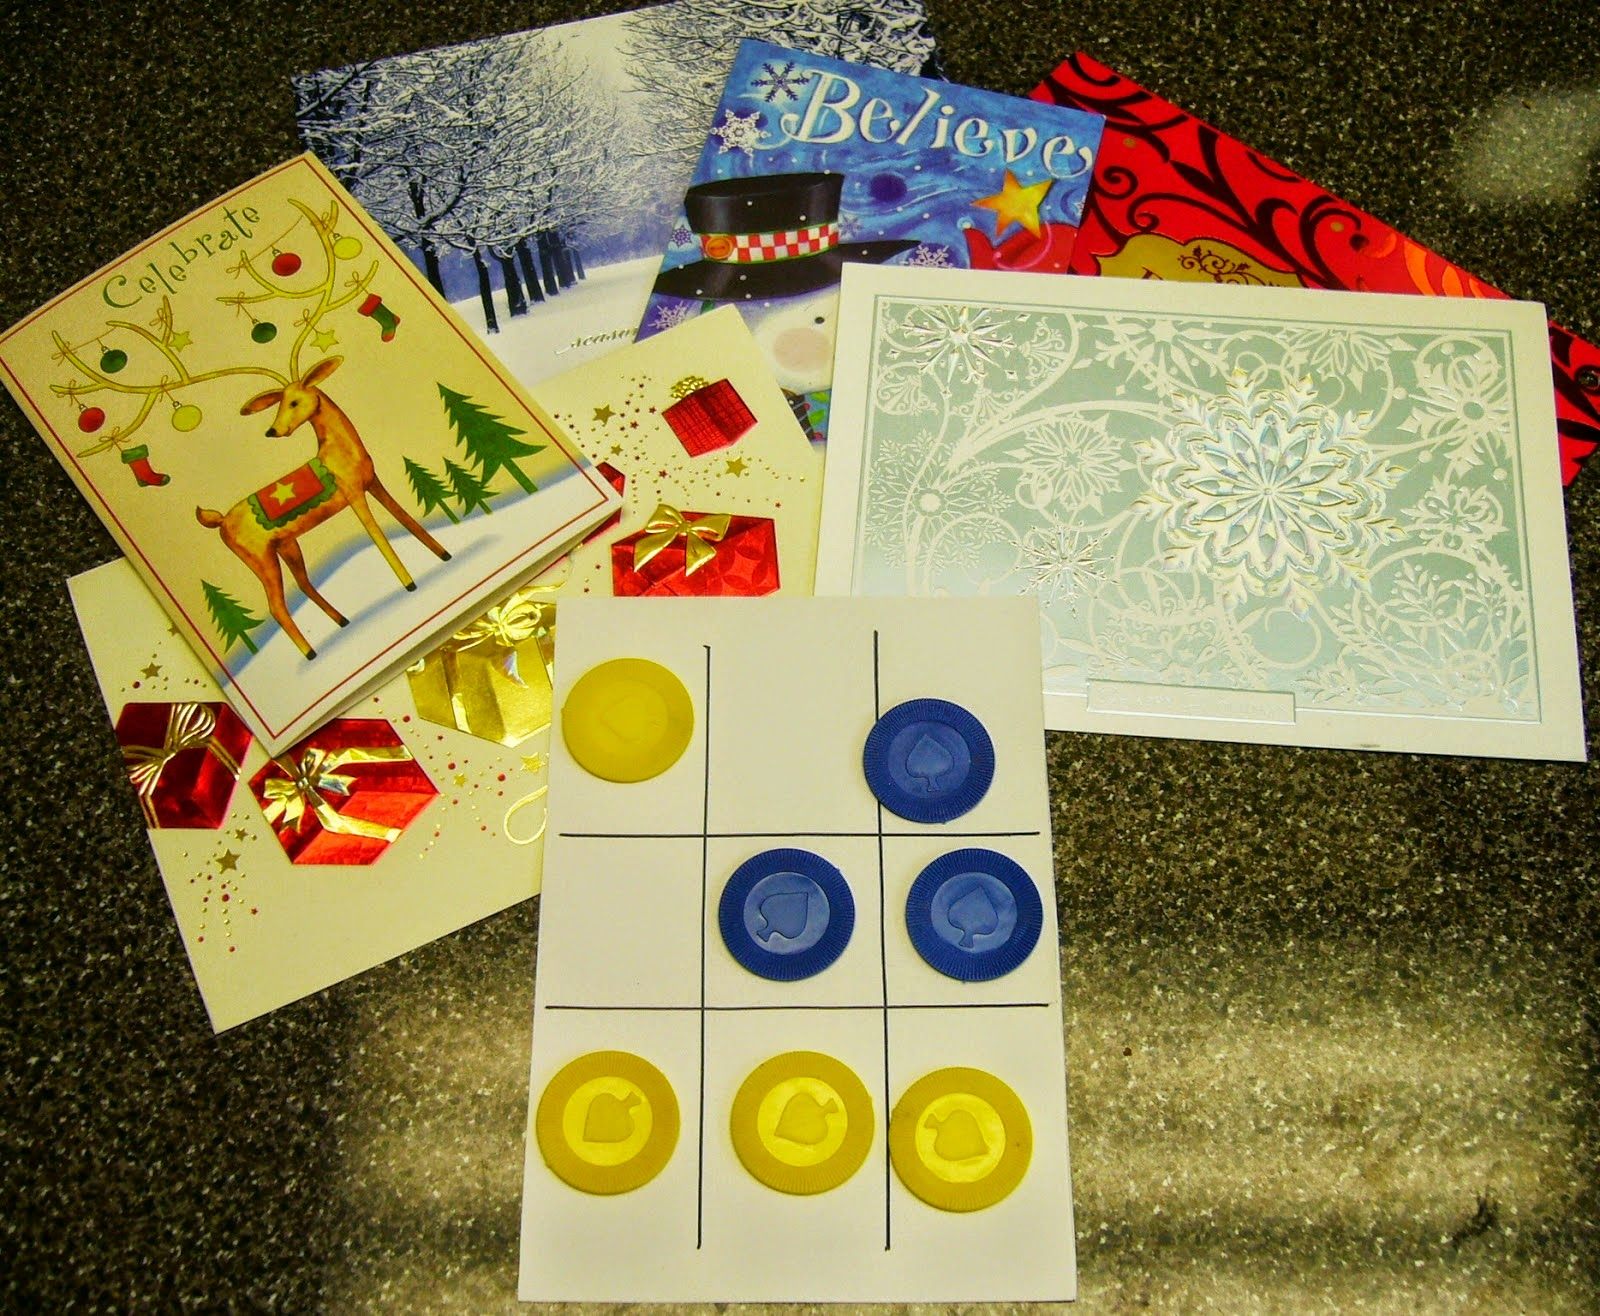 http://www.simplyshoeboxes.com/2015/02/tic-tac-toe-game-from-upcycled-greeting.html